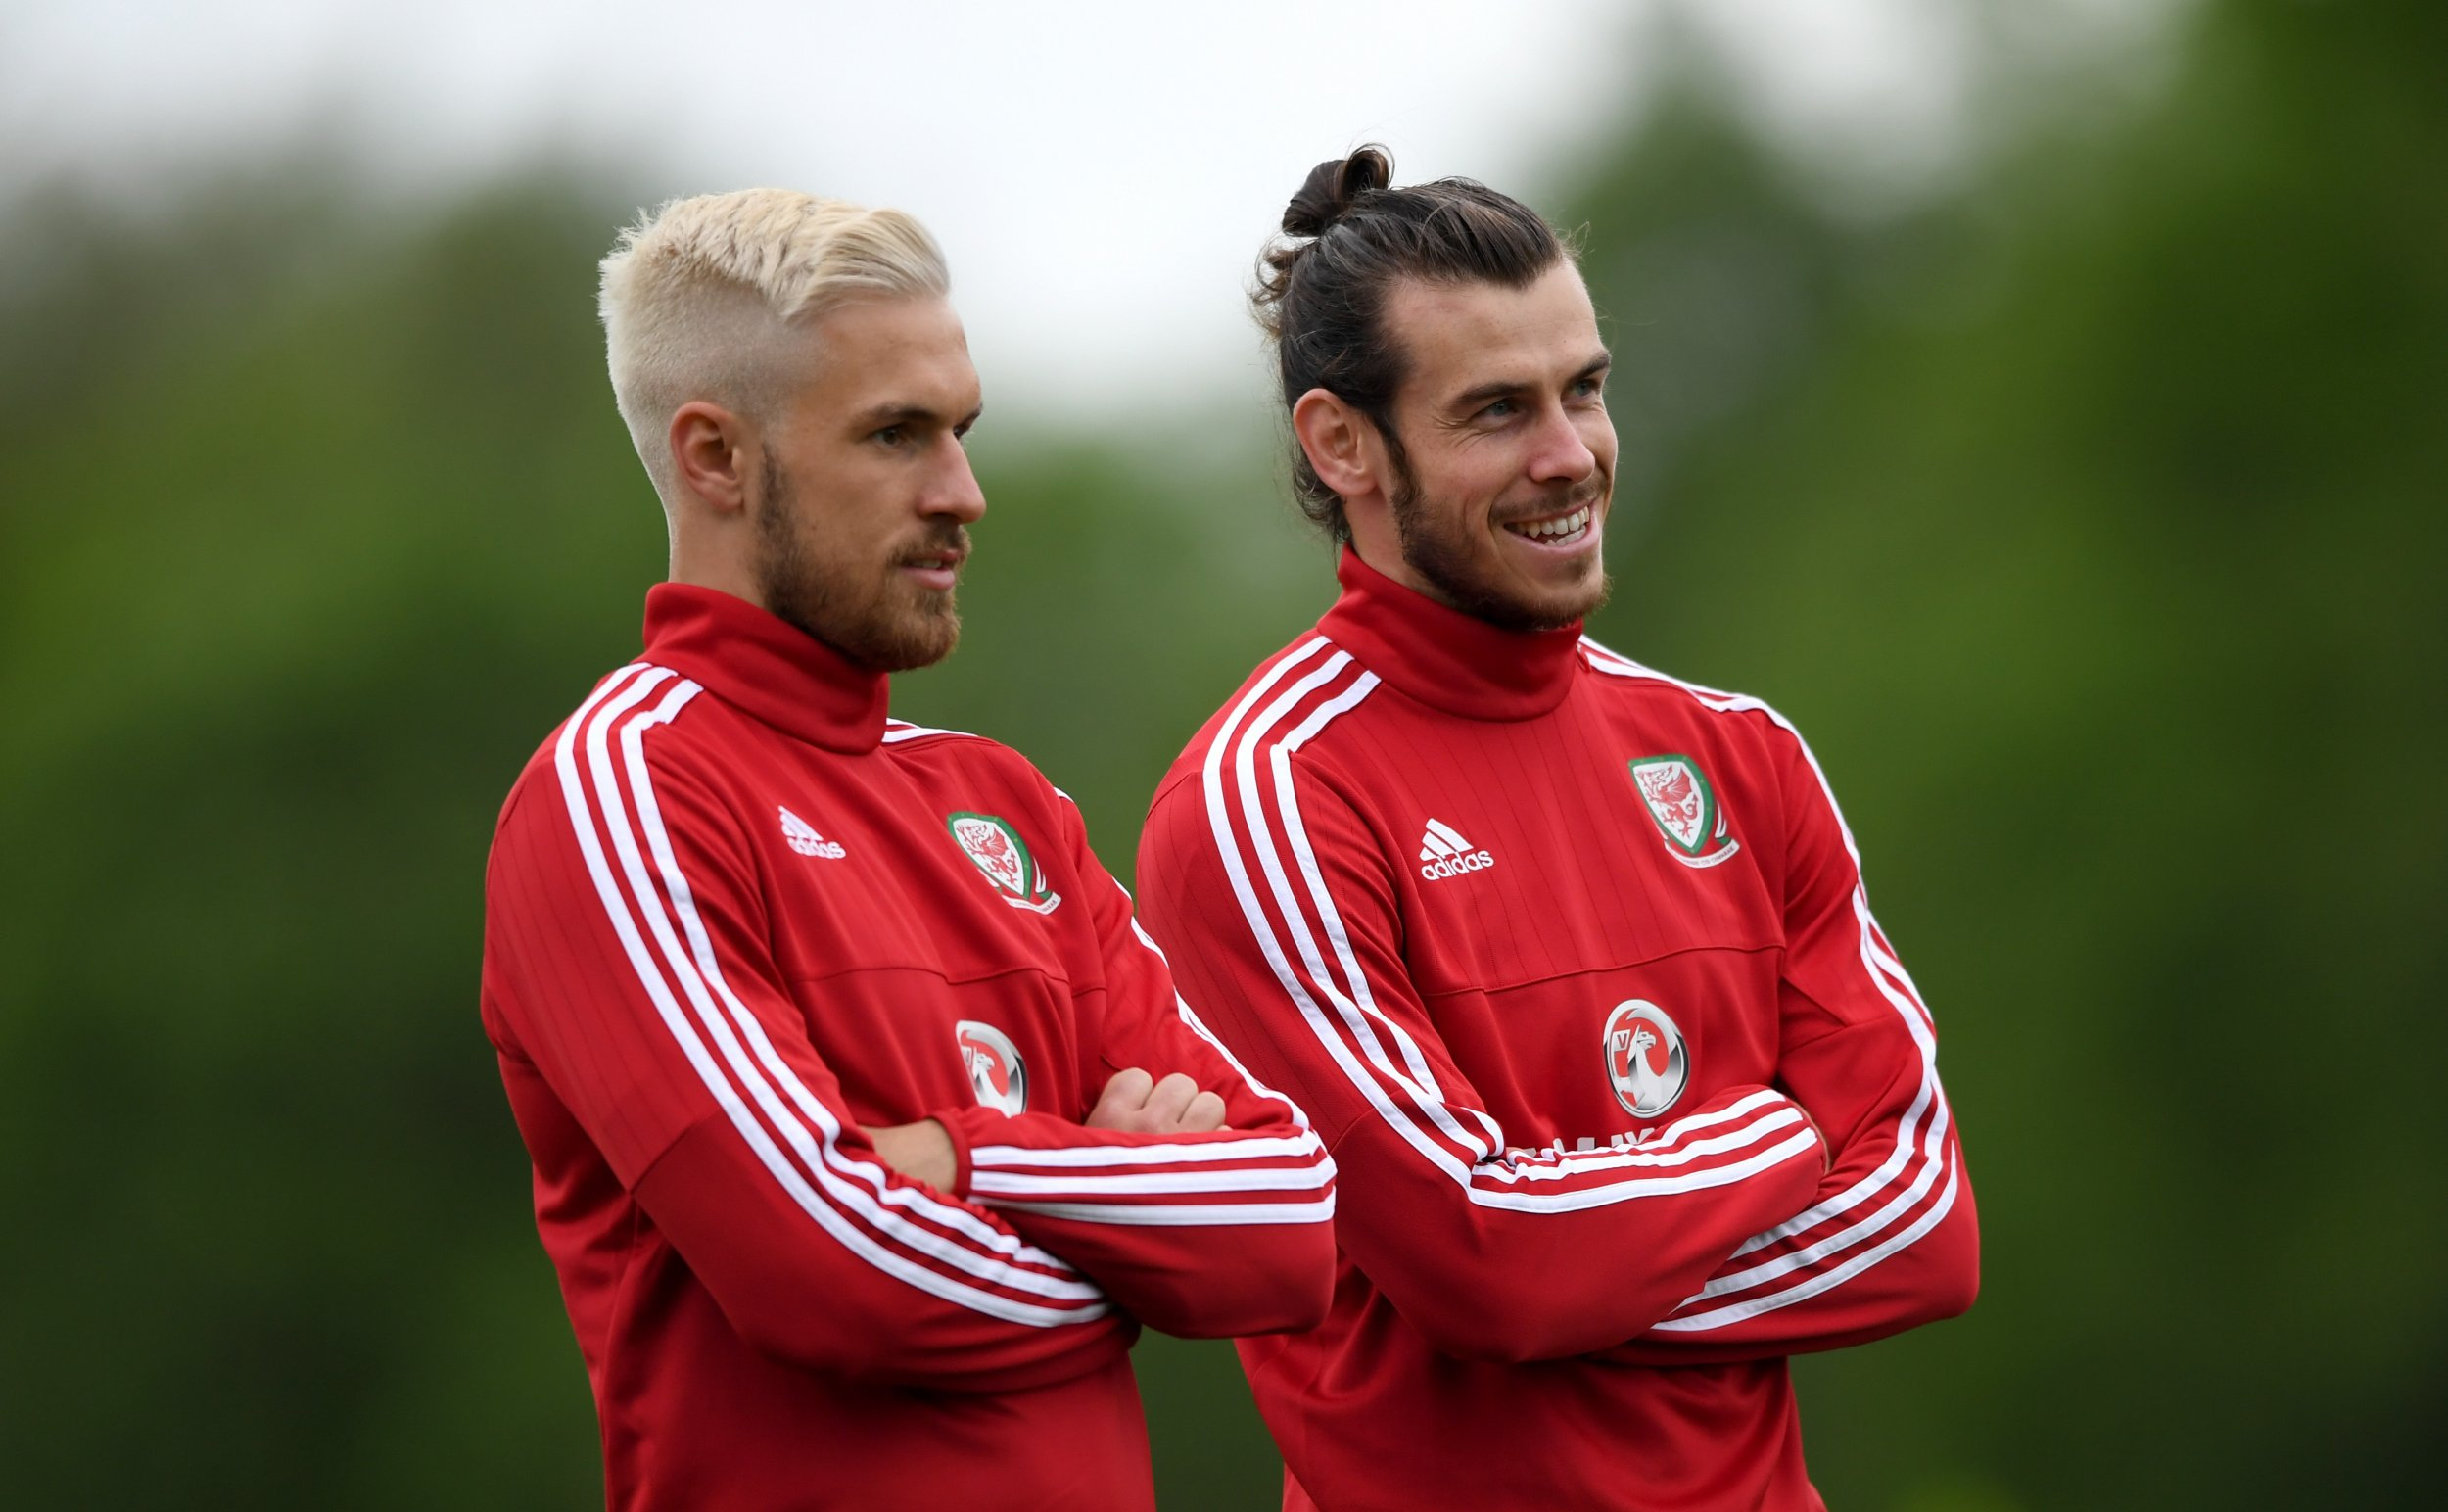 Ramsey and Bale